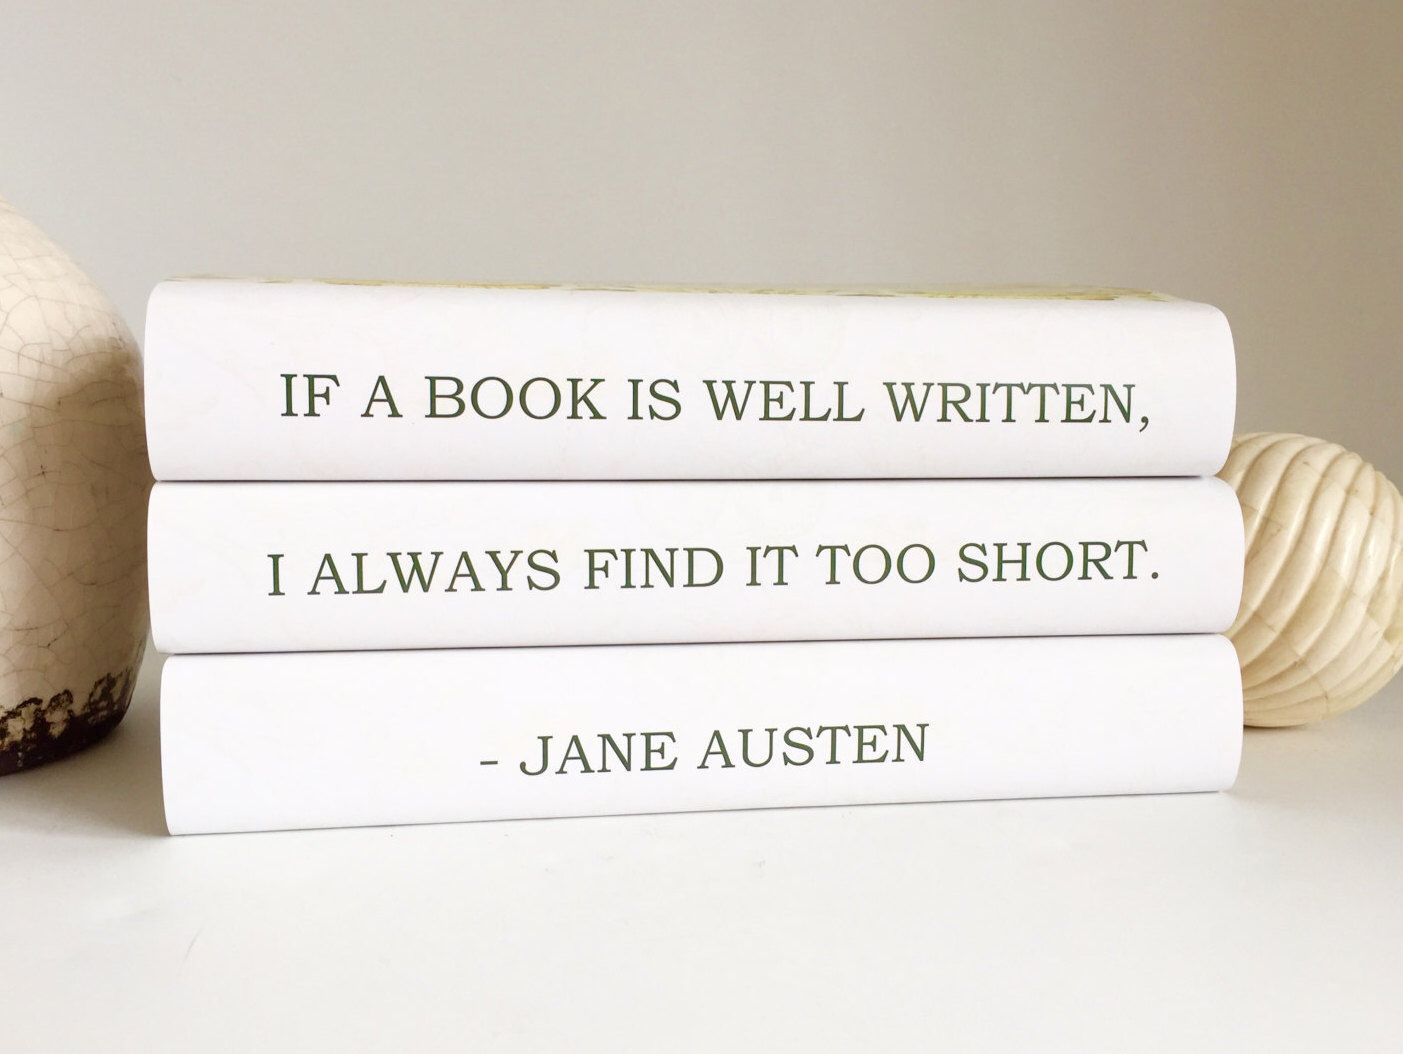 Jane Austen, Jane Austen Quote, Jane Austen Lover, Book Lover Gift, Decorative Quote Books, Gift for Book Lover, Custom Books, Floral Books by ArtfulLibrary on Etsy https://www.etsy.com/listing/262902779/jane-austen-jane-austen-quote-jane